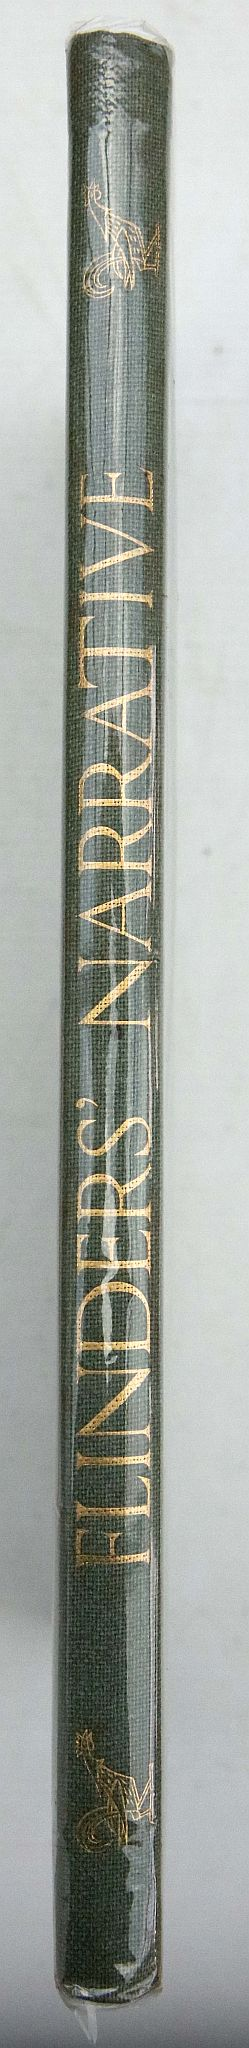 RAWSON, Geoffrey. Matthew Flinders' Narrative of His Voyage in the Schooner Francis: 1798 Preceded and Followed by Notes on Flinders, Bass, the Wreck of the Sideny Cove &C. [London]: The Golden Cockerel Press, 1946. Folio. Woodcut frontispiece, woodcuts in the text. Original green pictorial cloth, gilt (light staining, minor bumping to corners). LIMITED EDITION OF 750 COPIES OF WHICH THIS IS NUMBER 592.